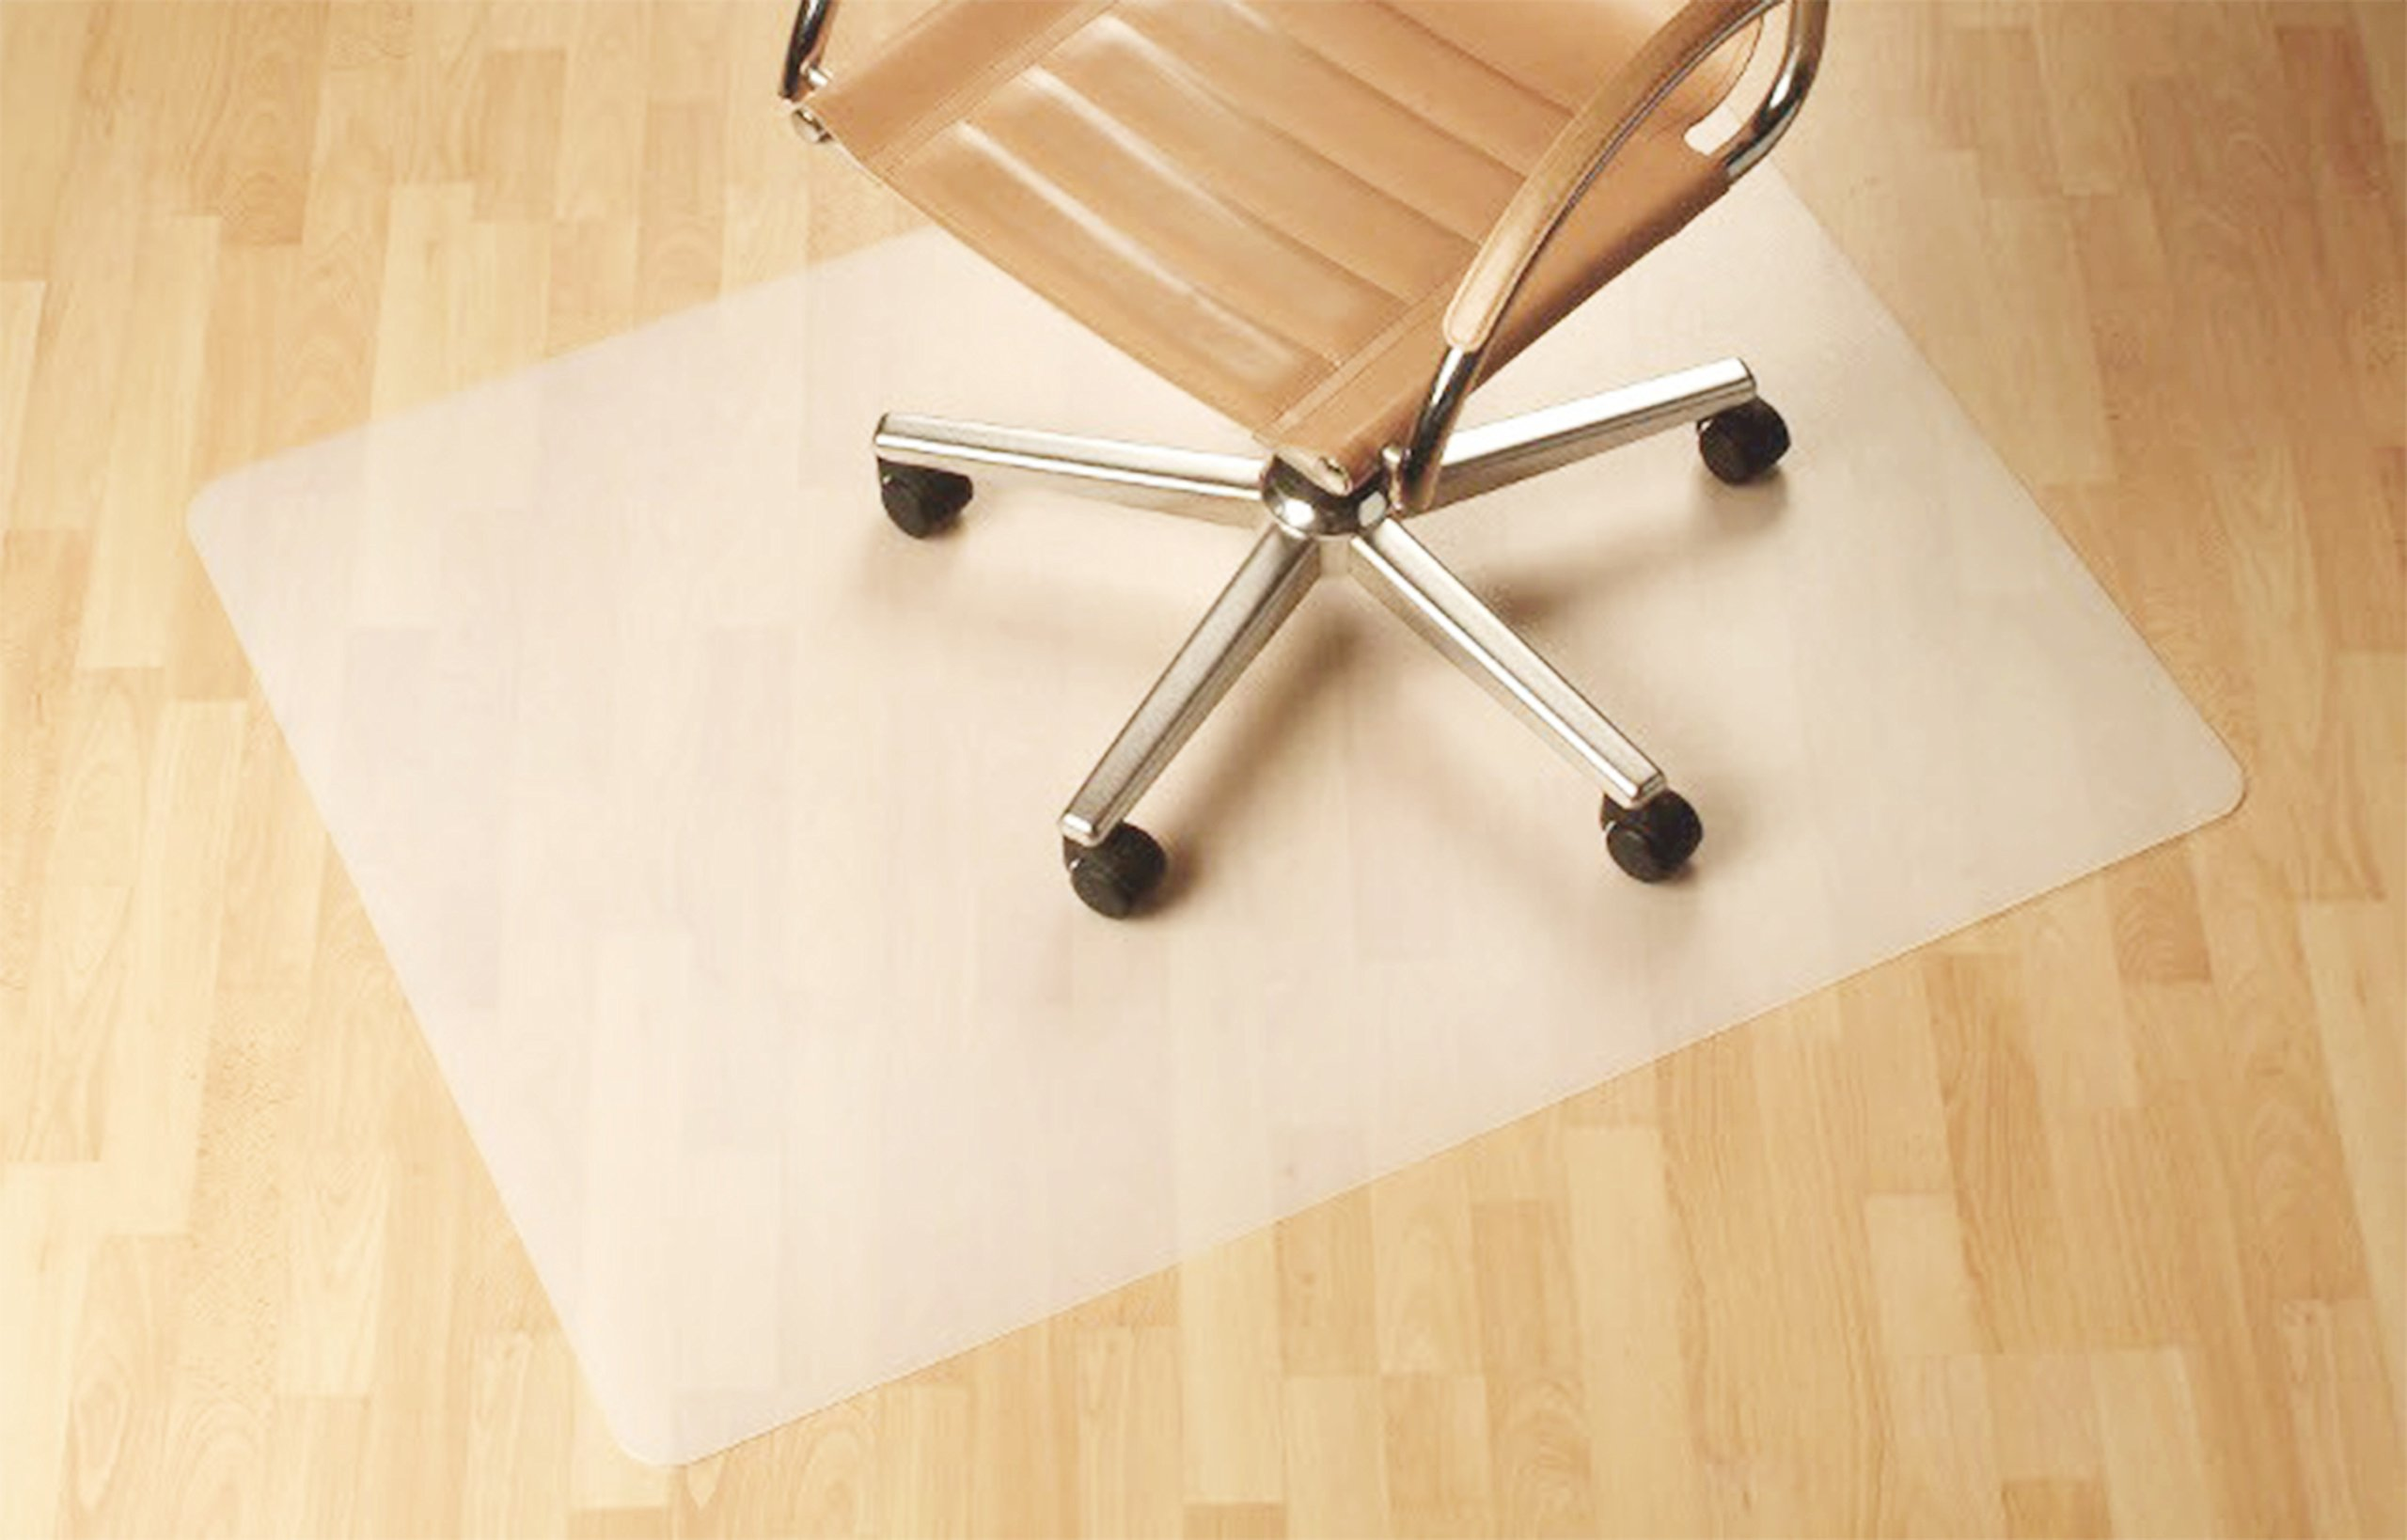 Polytene Office Chair Mat, 47''x35'',Hard Floor Protection with Rectangular Shaped Anti Slide Coating on The Underside,Semi Clear